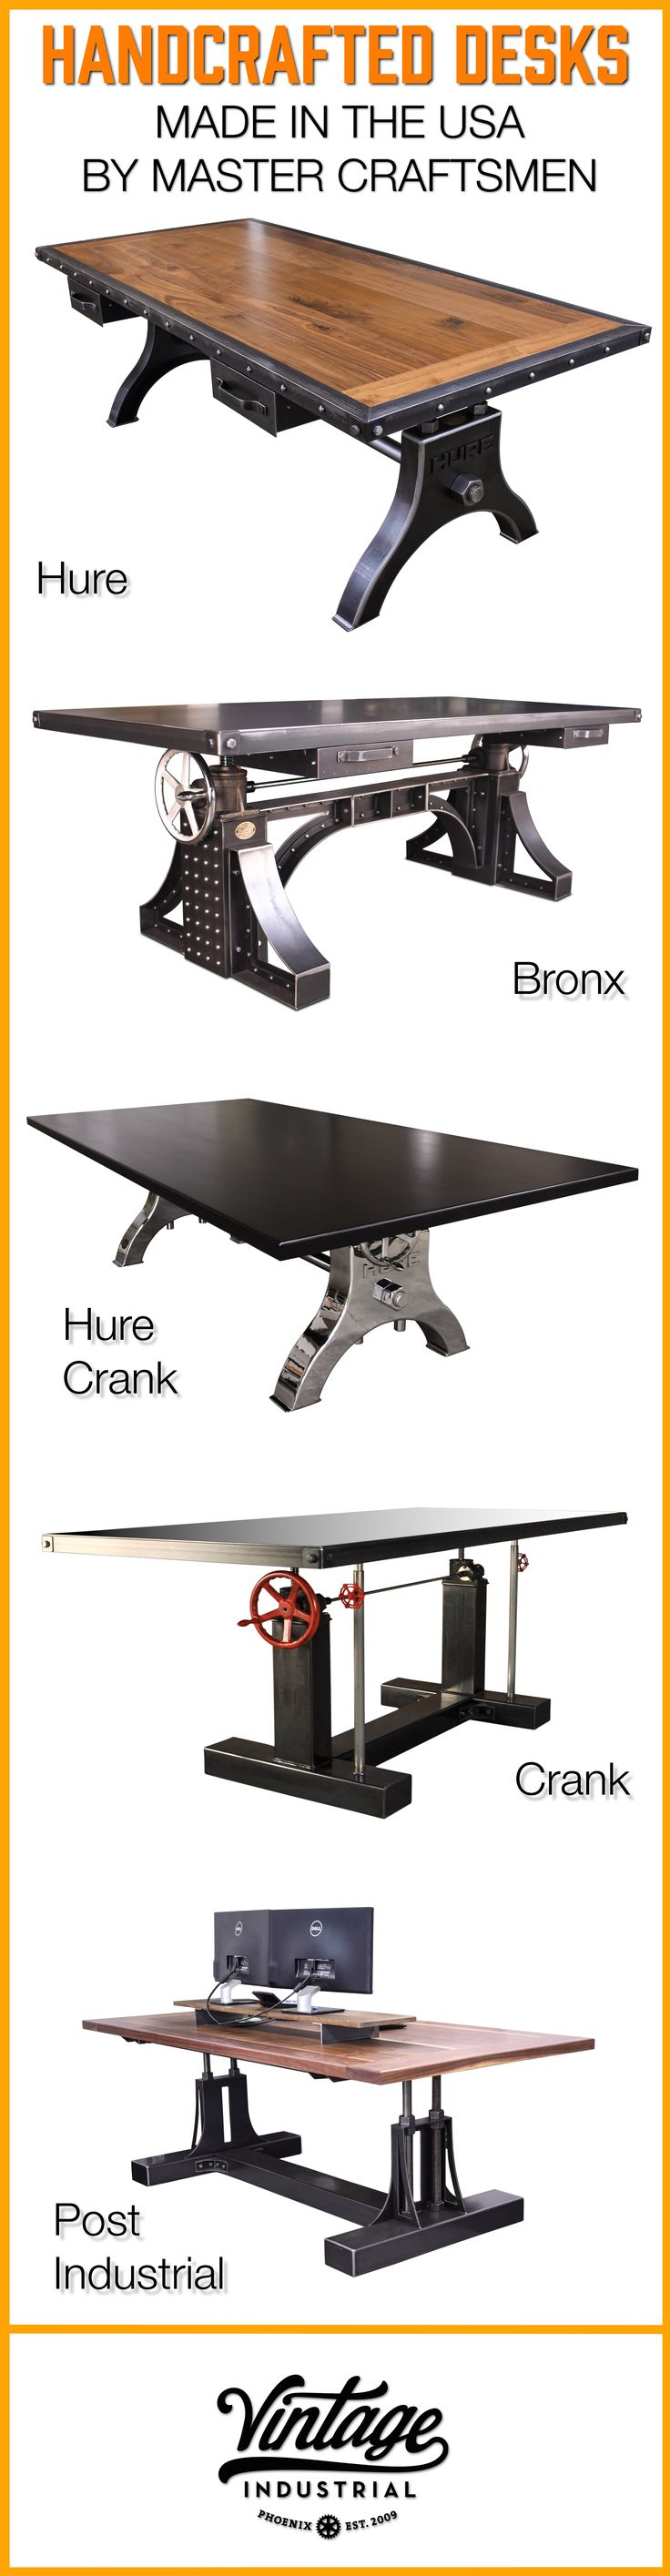 Hure conference table with faux crank vintage industrial furniture - Vintage Industrial Has Been Making The Highest Quality Industrial Style Desks Since 2009 All Of